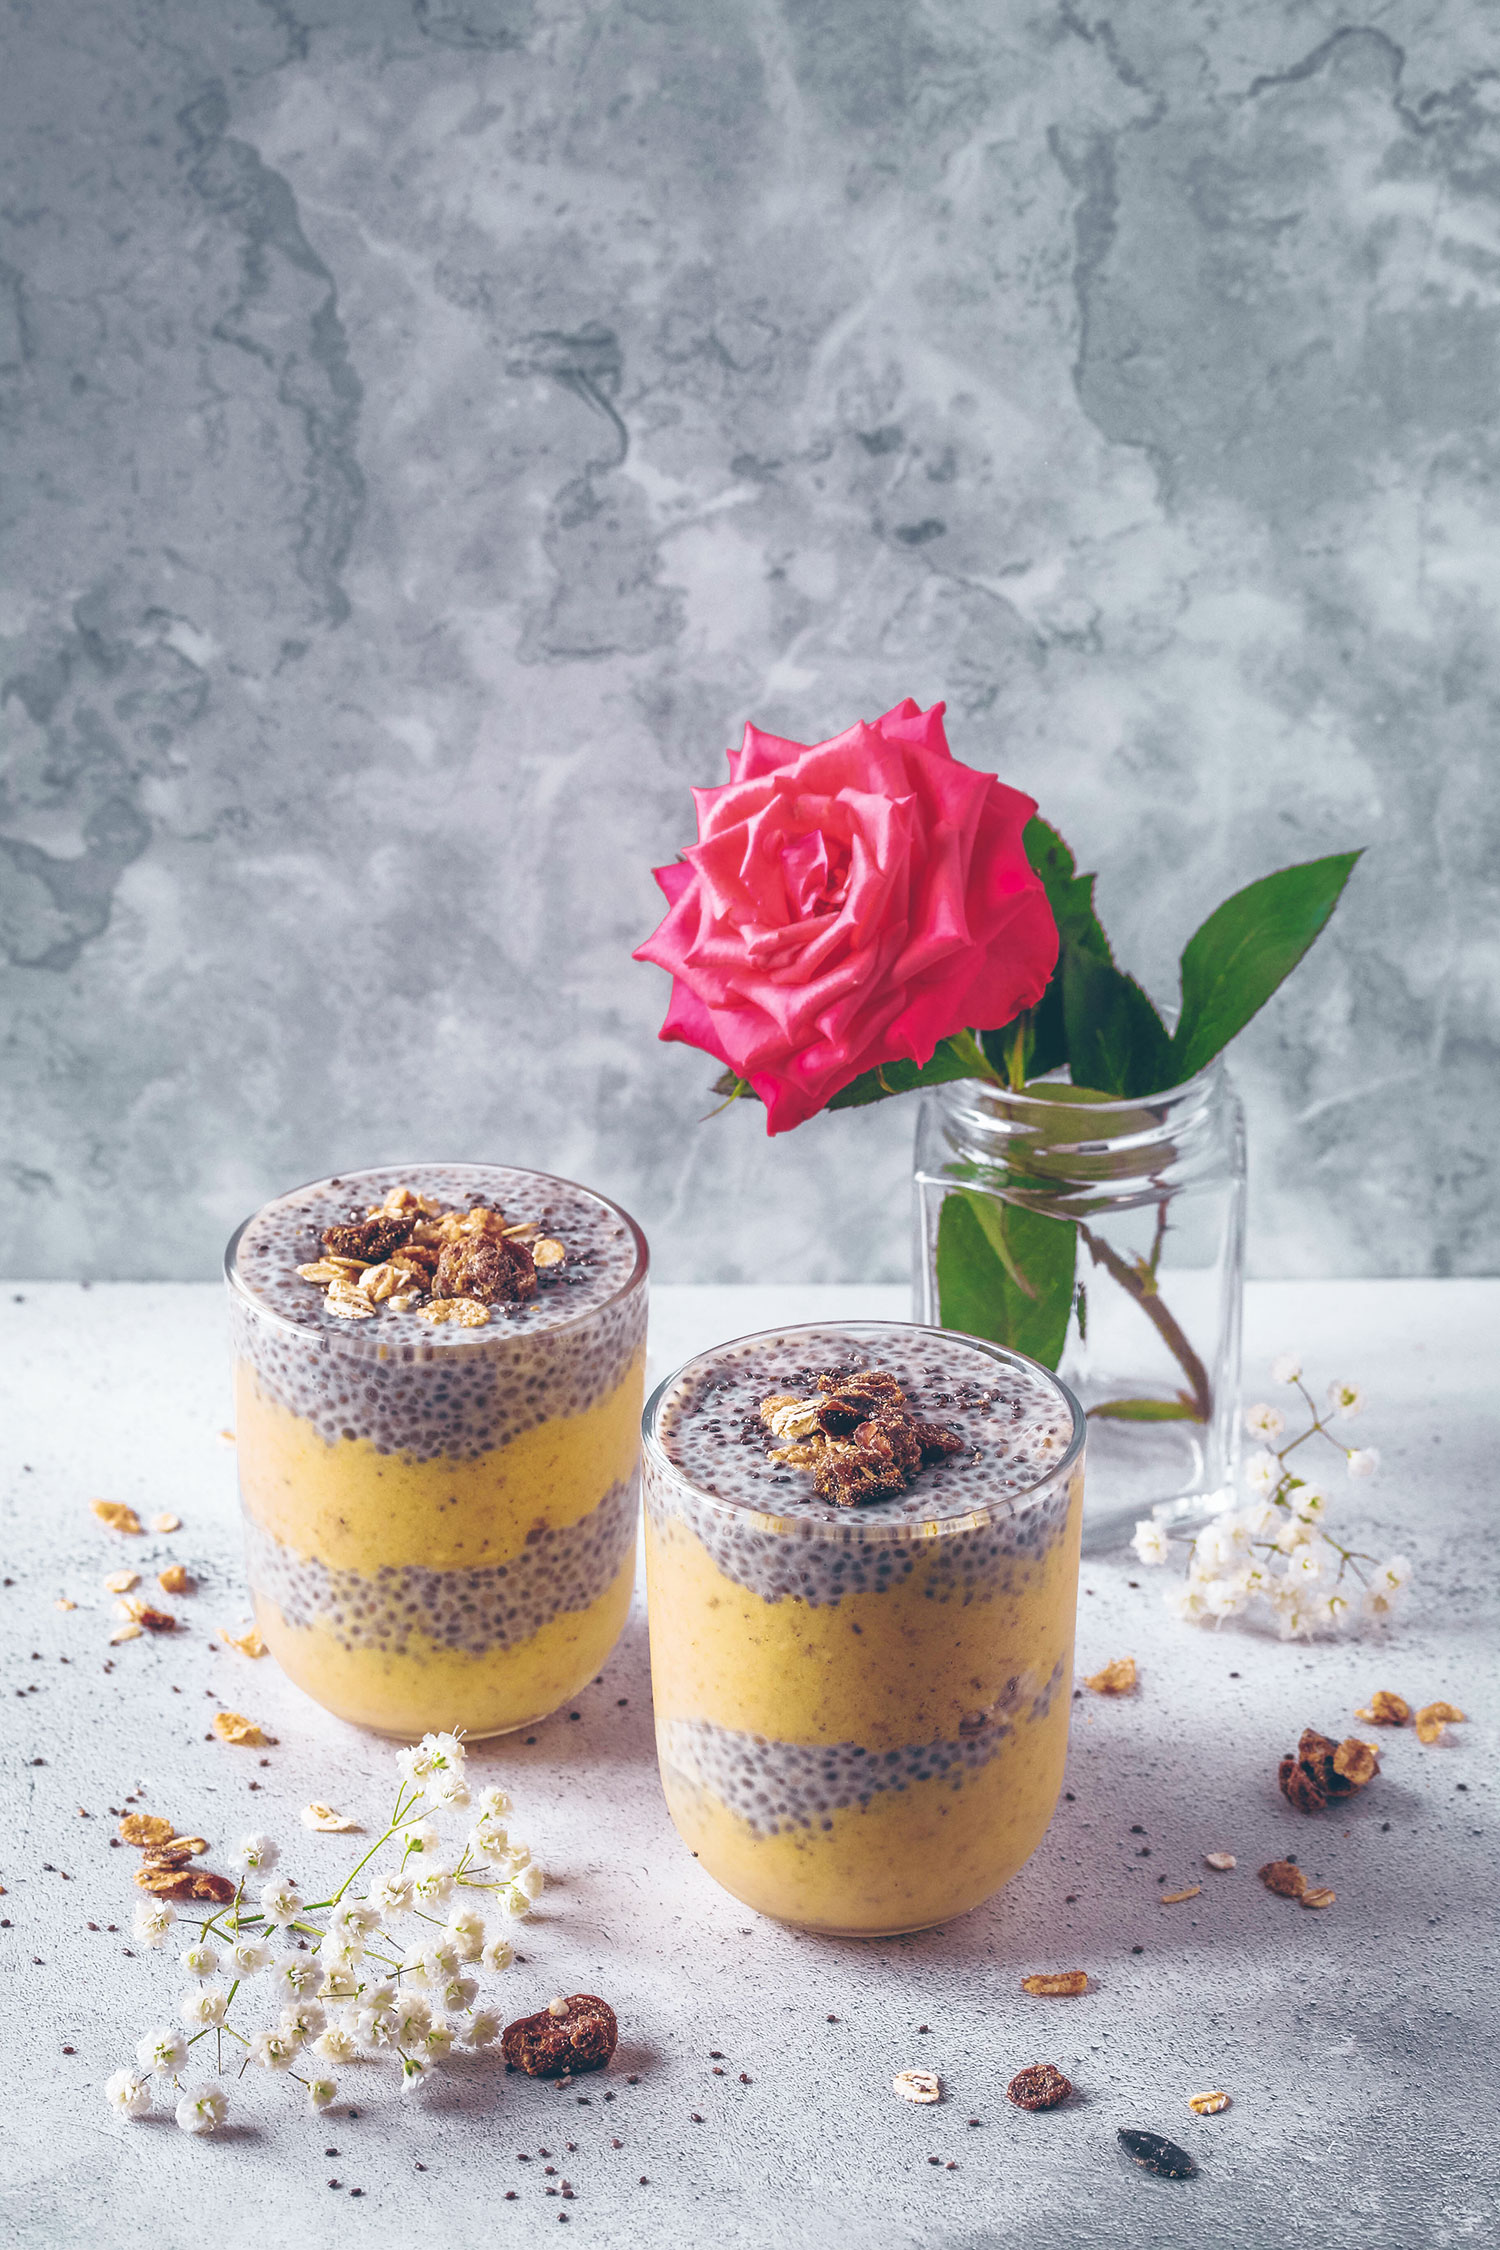 Golden Smoothie & Chia Pudding Parfait